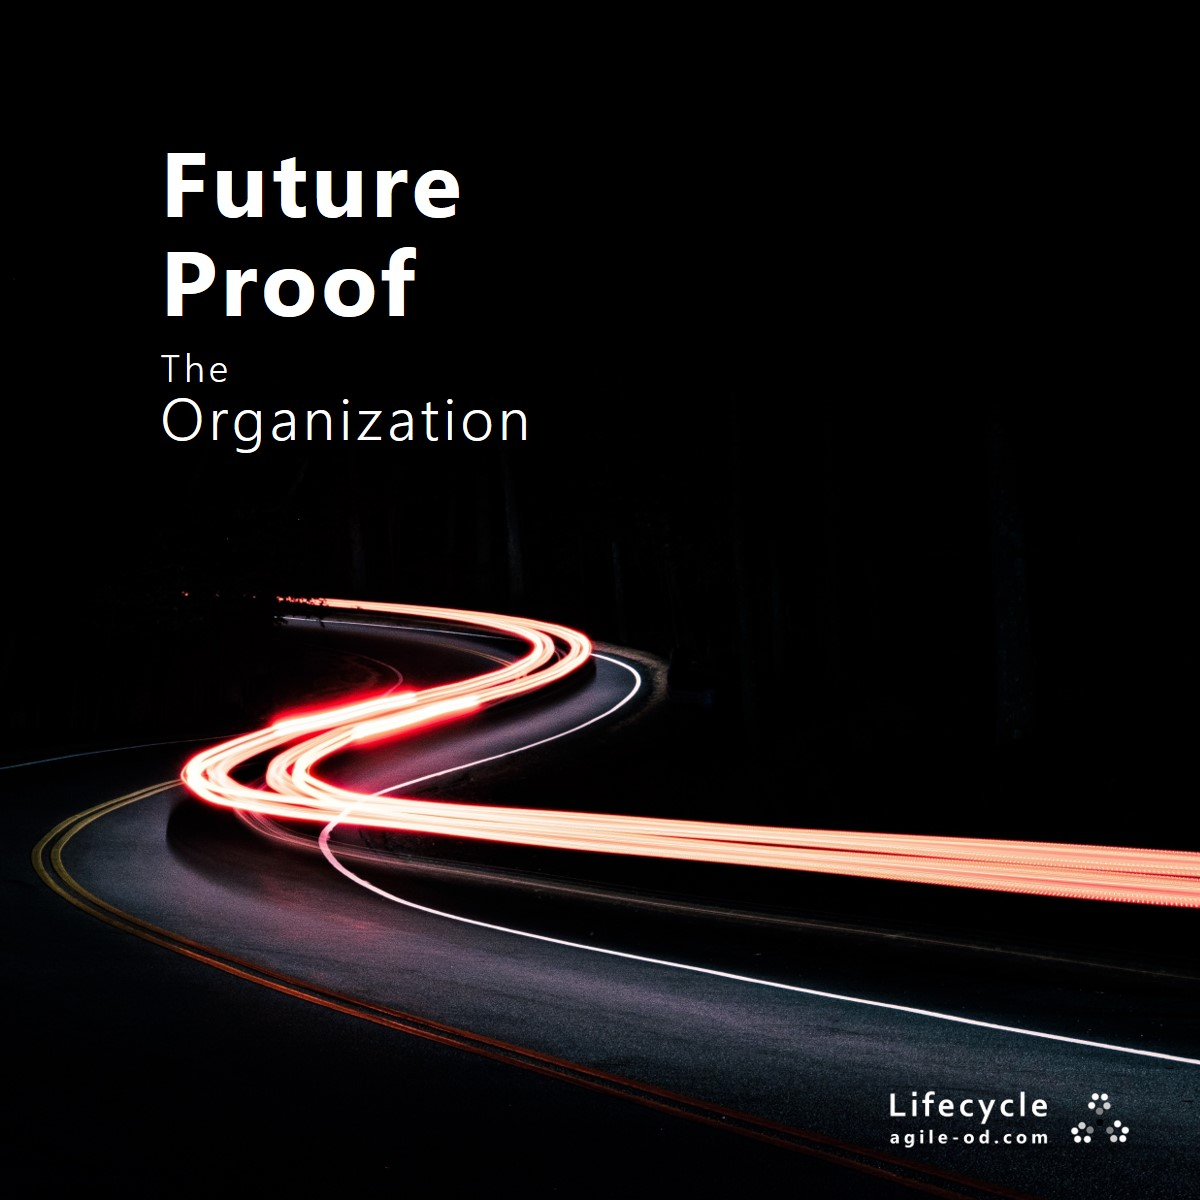 Future Proof the Organization - Lifecycle - agile-od.com